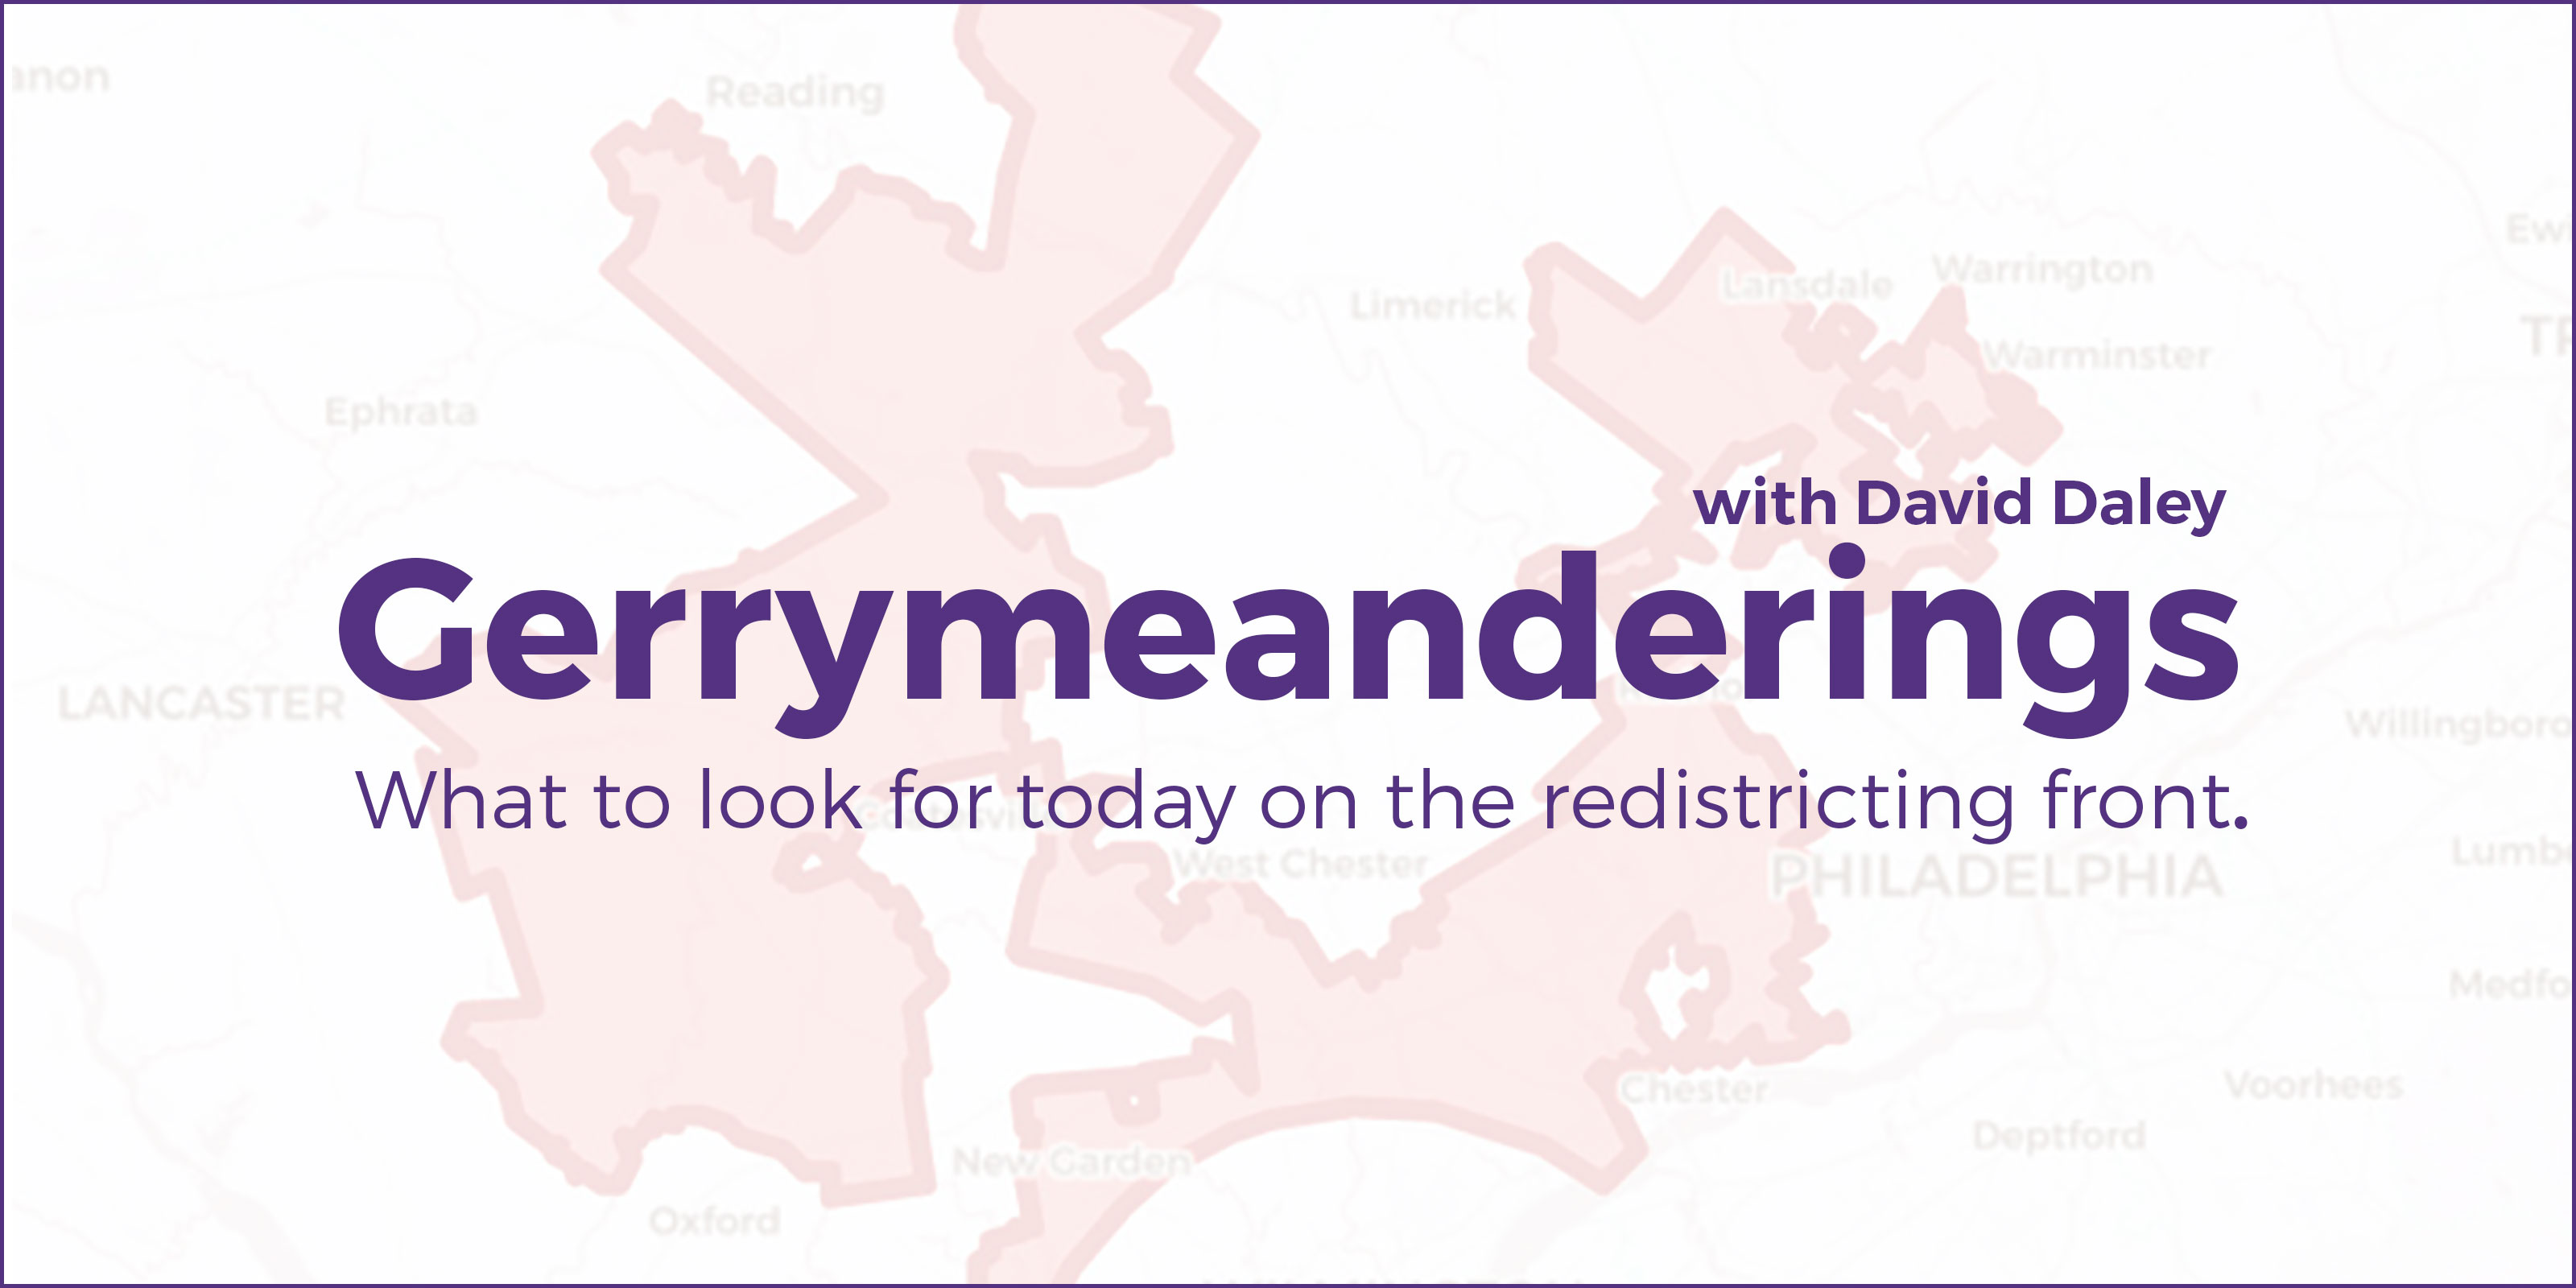 """""""Simply put, there is no hurry"""": PA gerrymander gets audacious defense from six secretaries of state"""